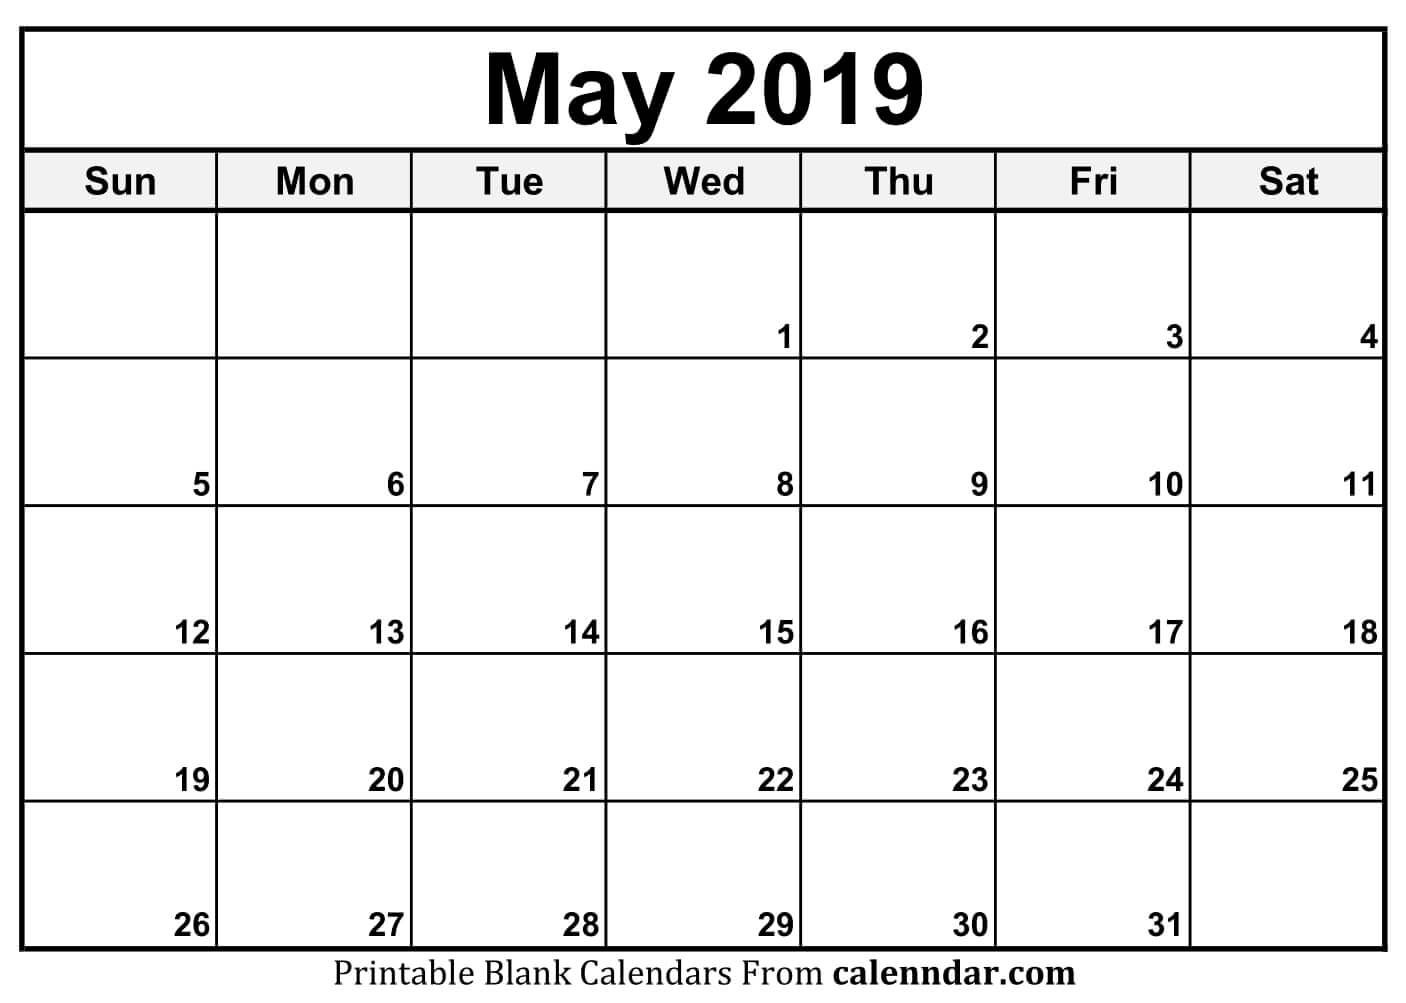 Blank May 2019 Calendar Templates - Calenndar Calendar May 4 2019